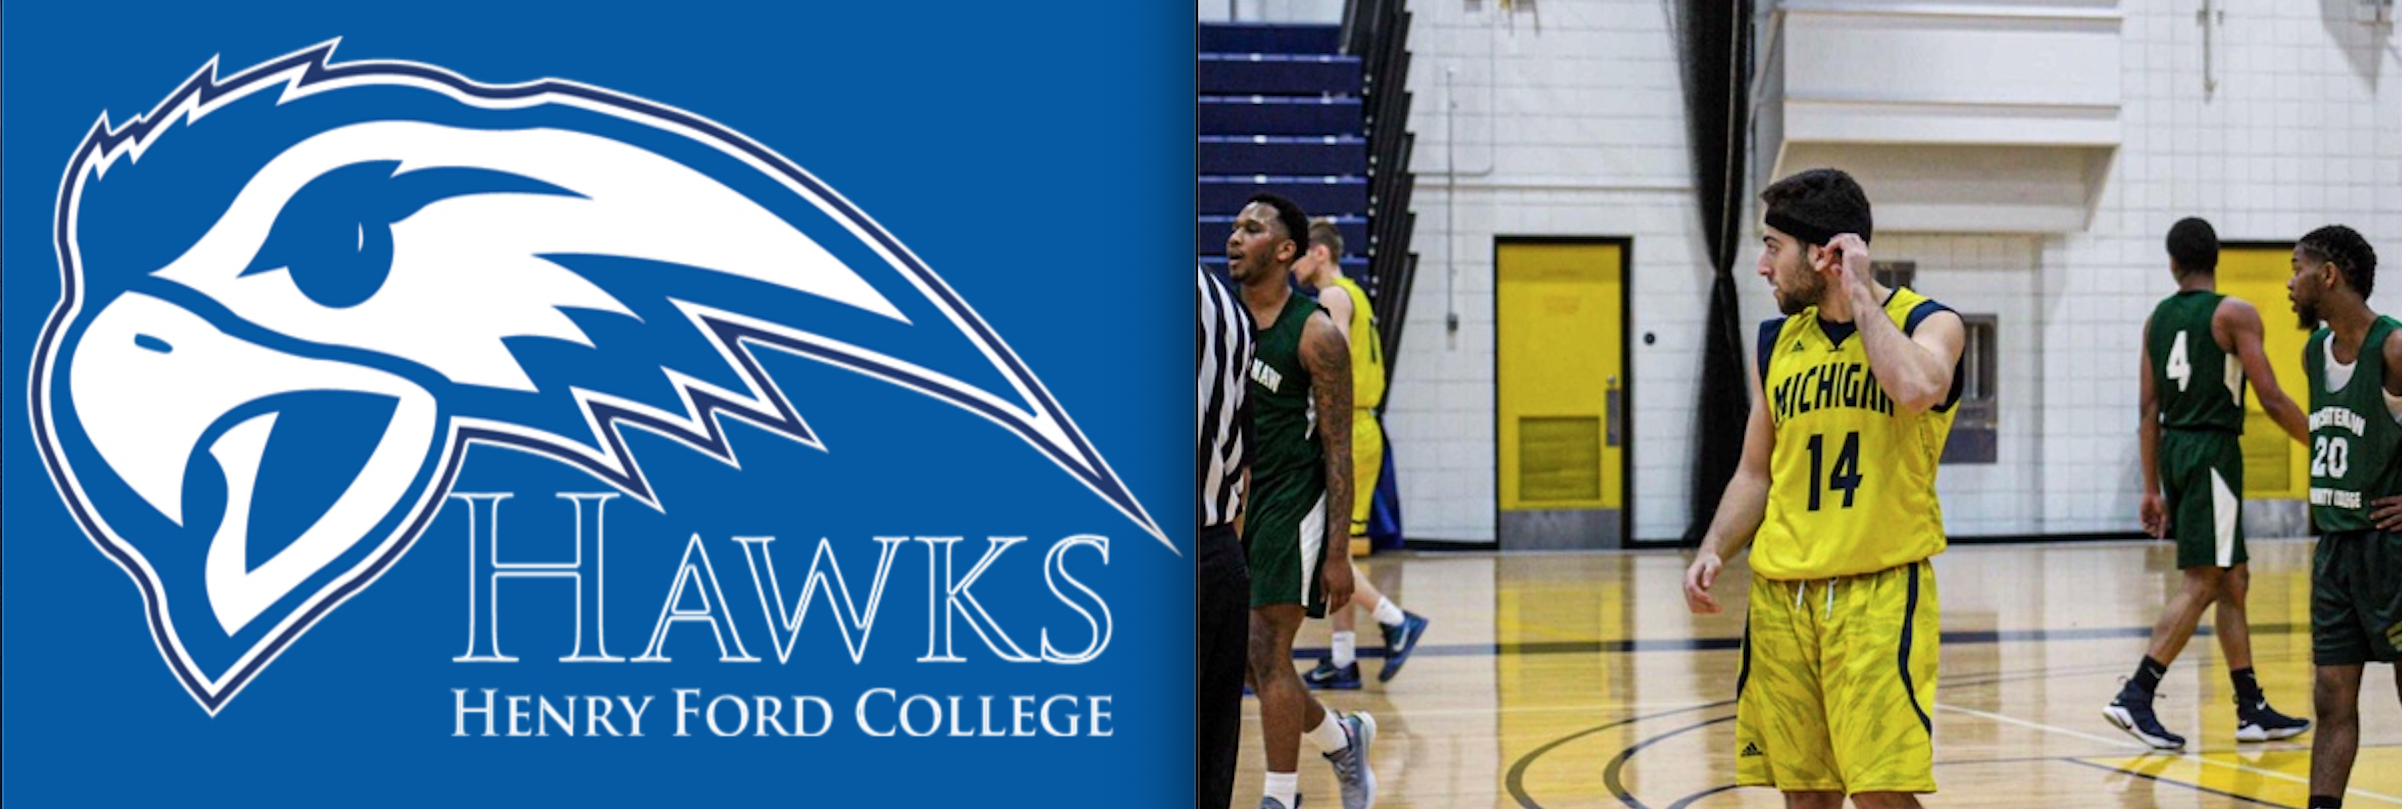 Hawks Athletics logo next to photo of UM-Dearborn basketball player, Mohamed Wahidi